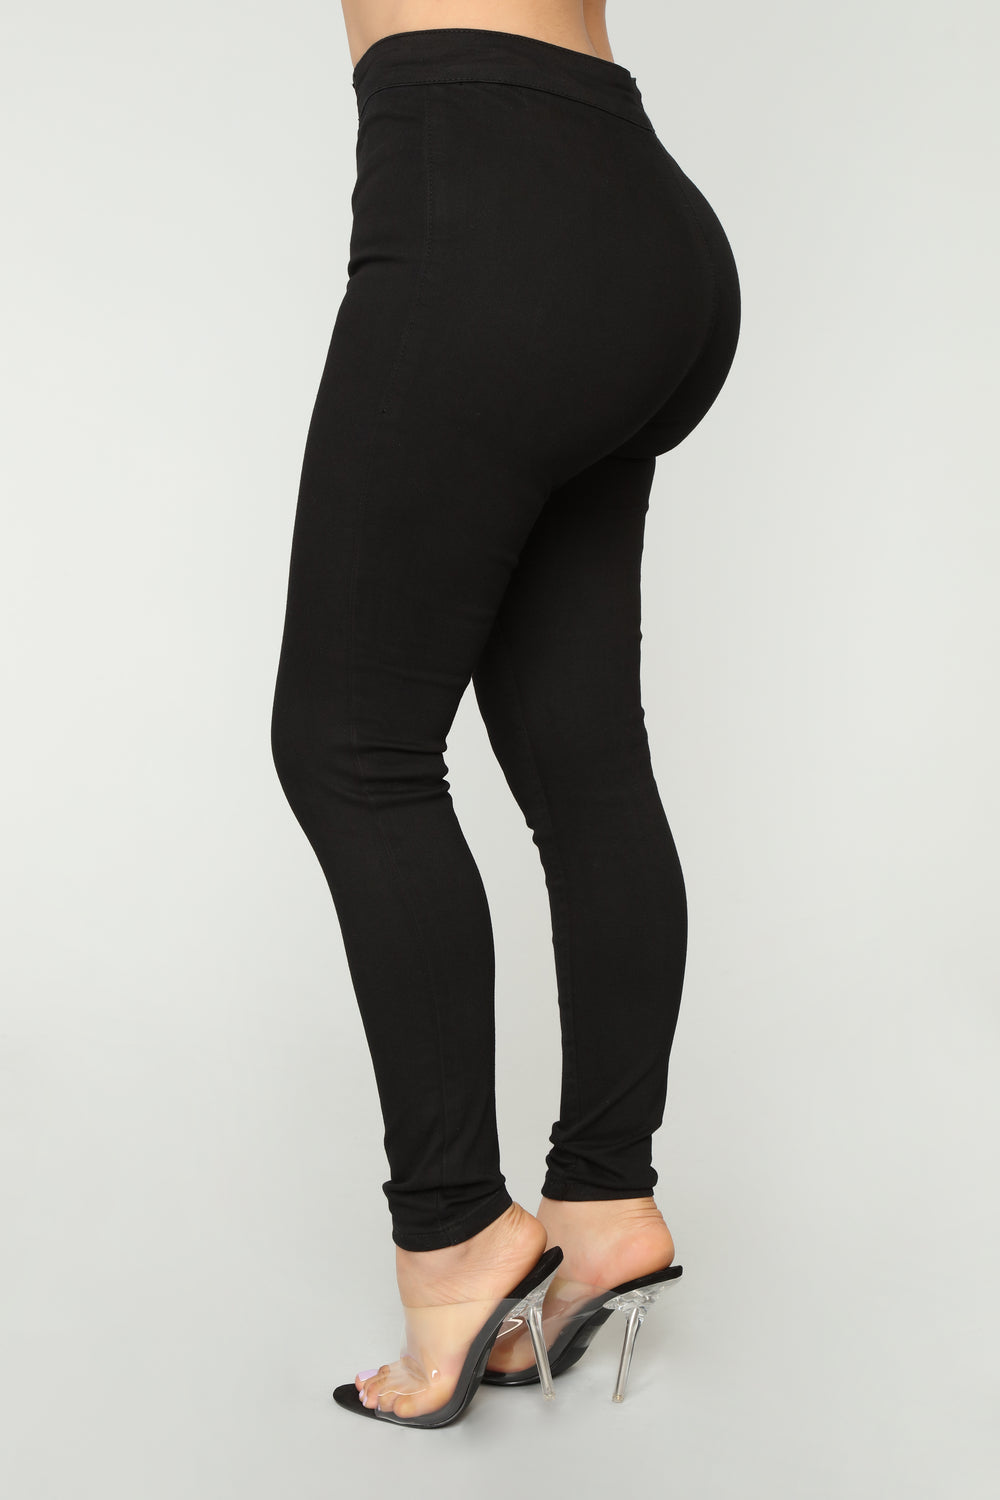 Hook n Eye Ankle Jeans - Black